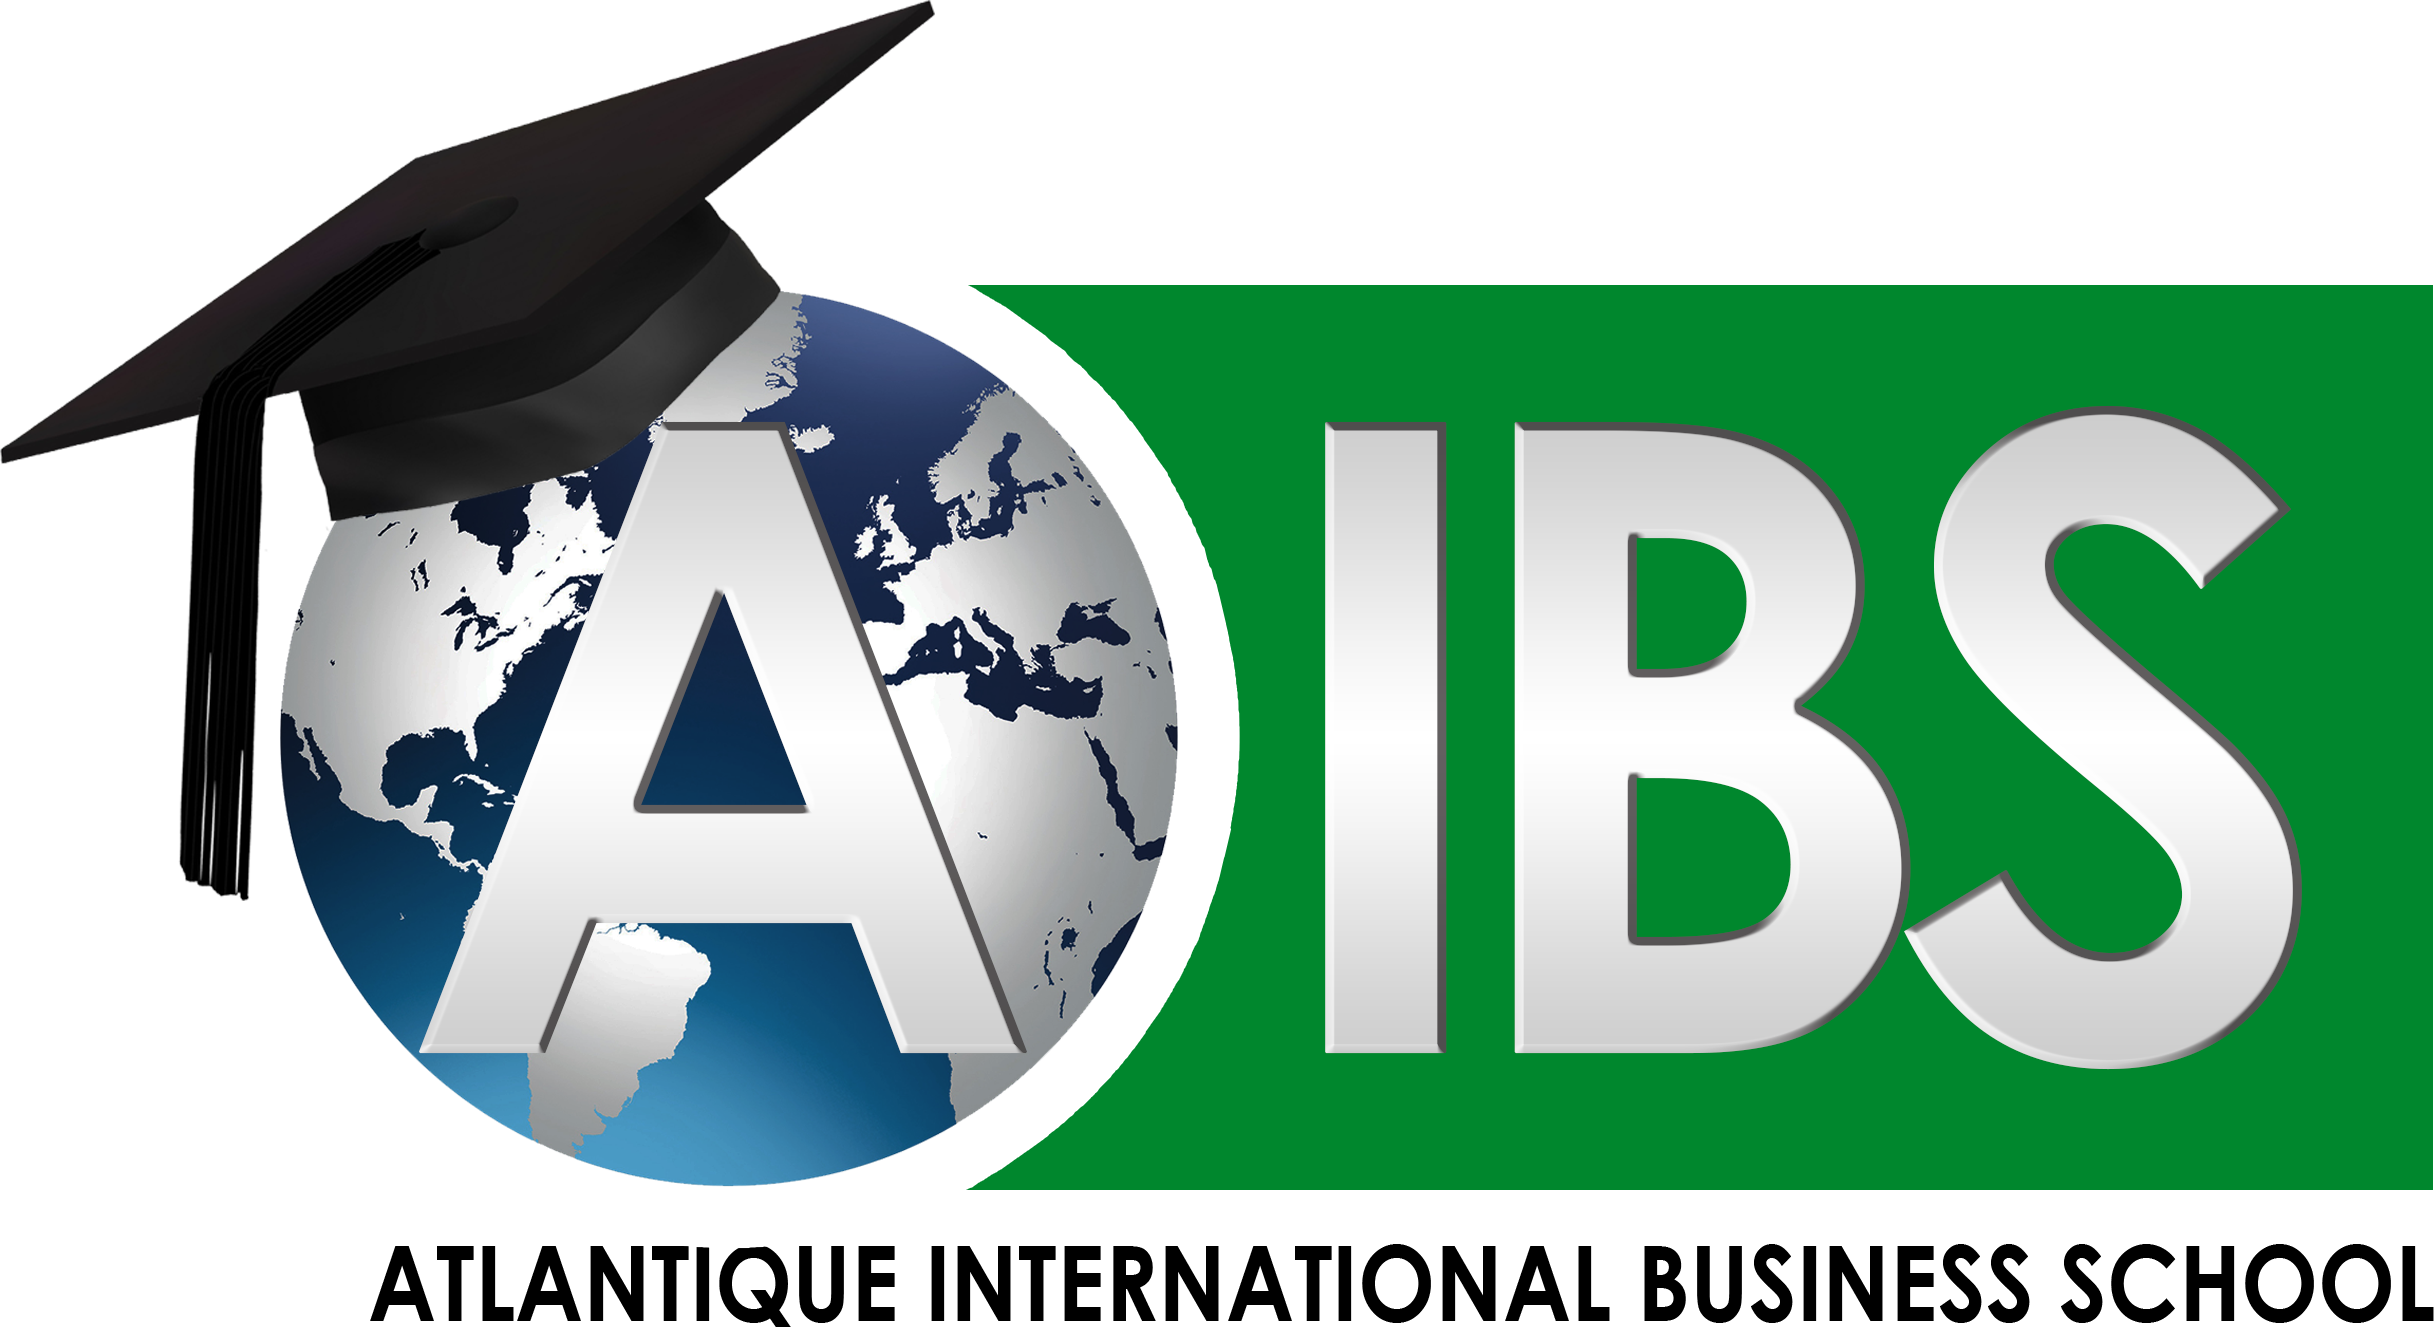 New partnership with Atlantique International Business School (AIBS)